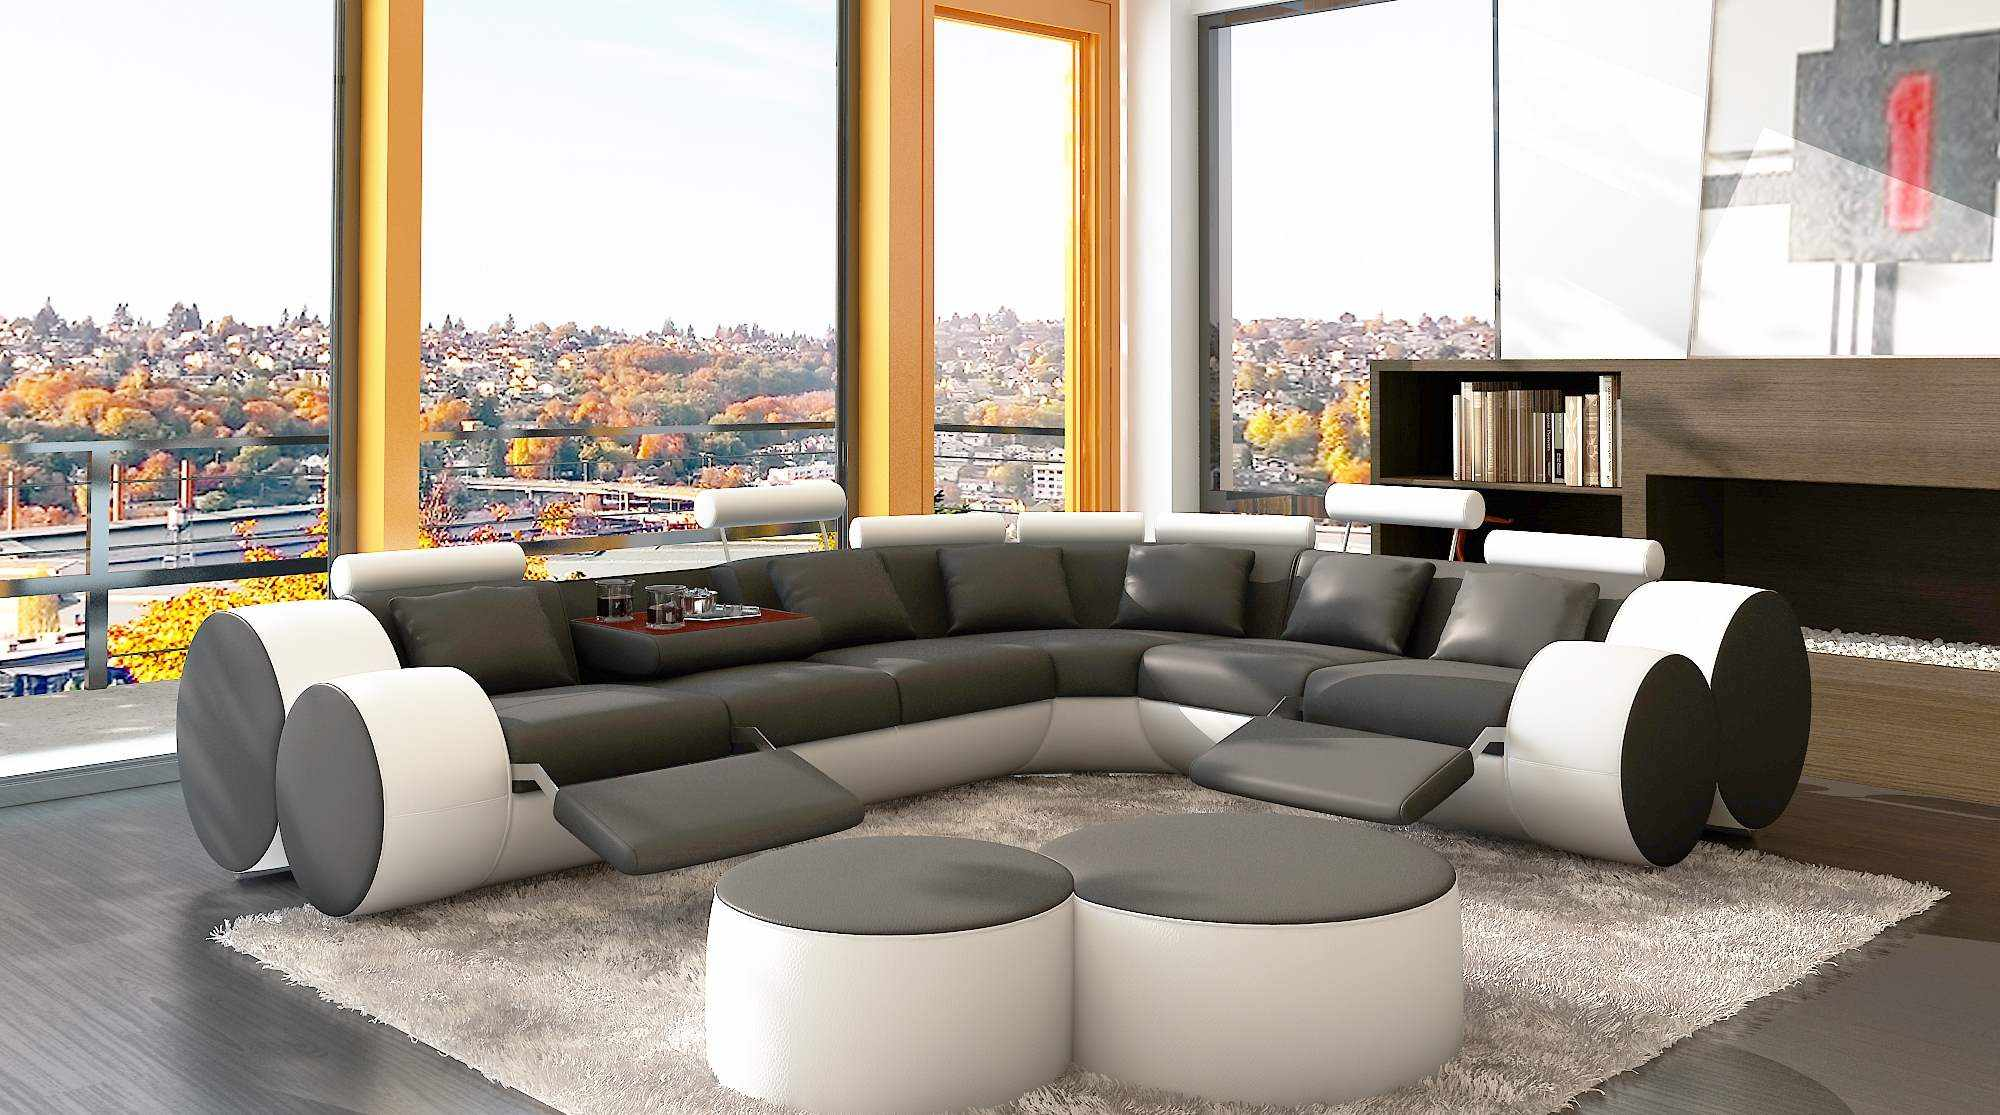 deco in paris 1 canape d angle cuir gris et blanc positions relax roma can ang roma gris blanc. Black Bedroom Furniture Sets. Home Design Ideas